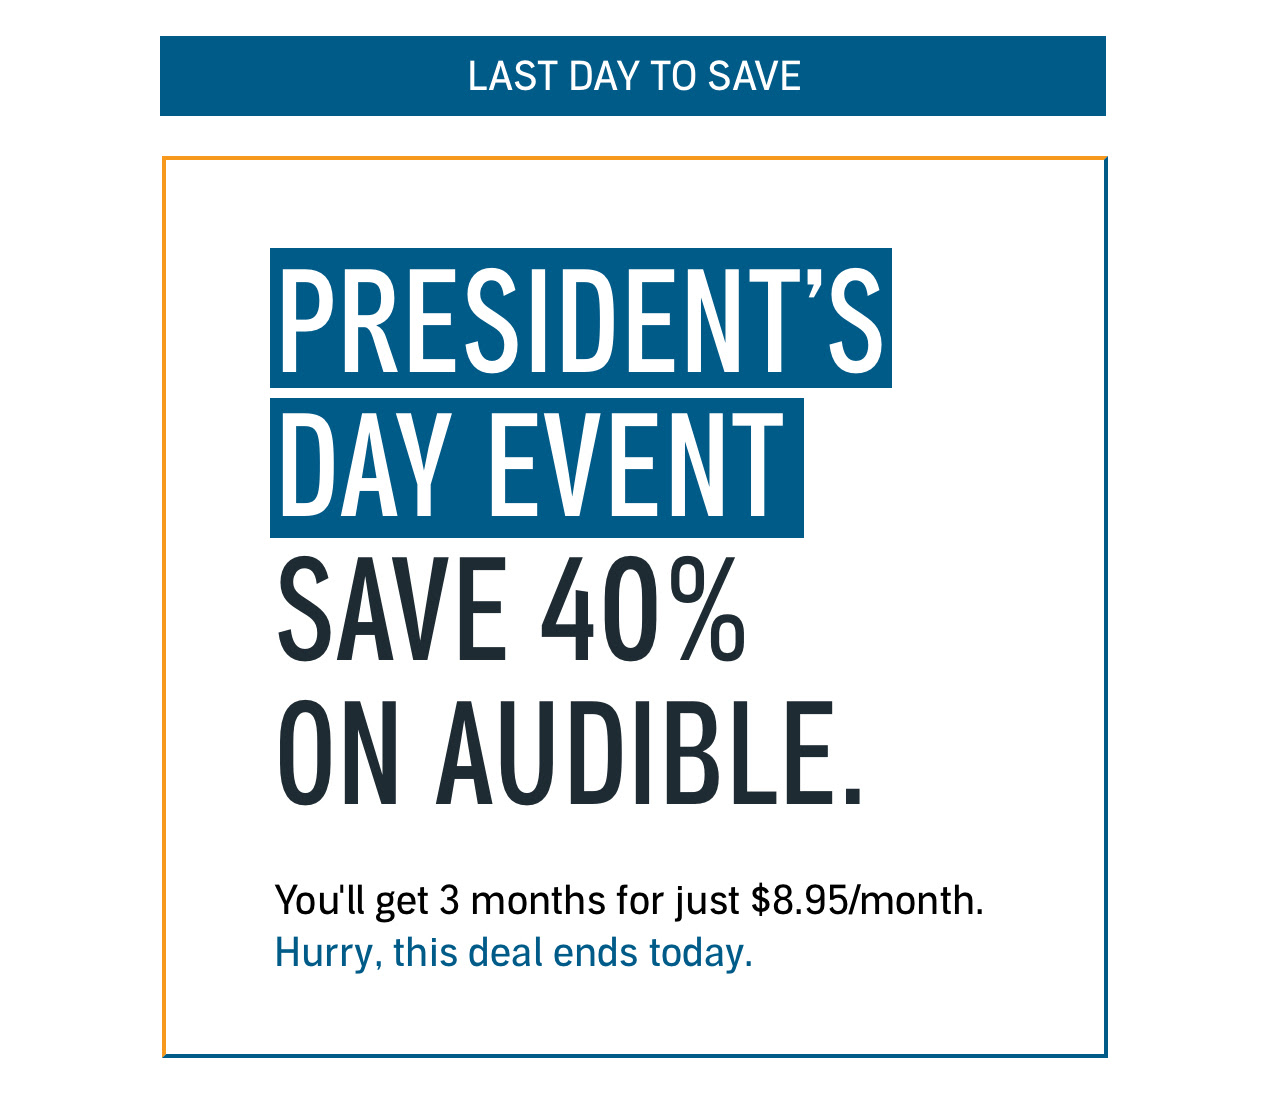 LAST DAY! PRESIDENT'S DAY EVENT: SAVE 40%! Get your first 3 months of Audible for just $8.95/month. Hurry, this deal ends soon.